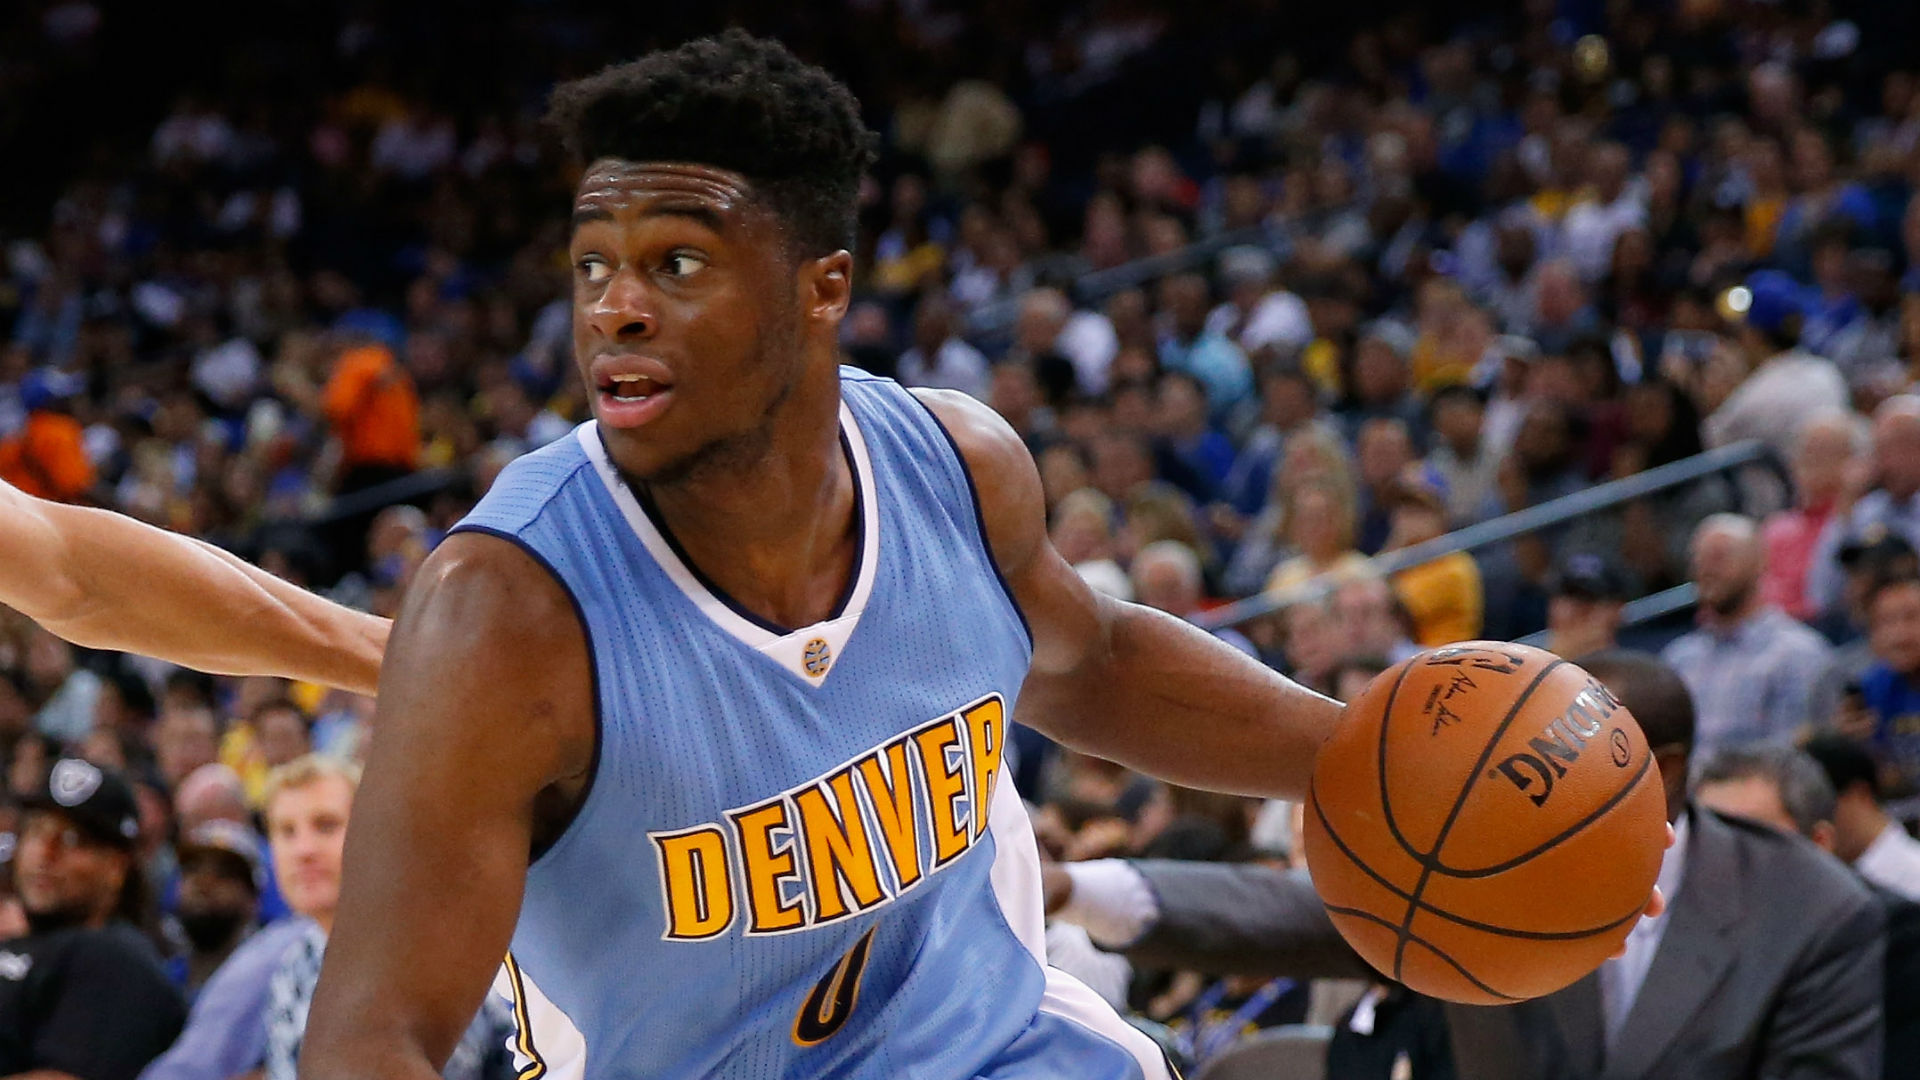 Knicks to acquire Emmanuel Mudiay in 3-team trade